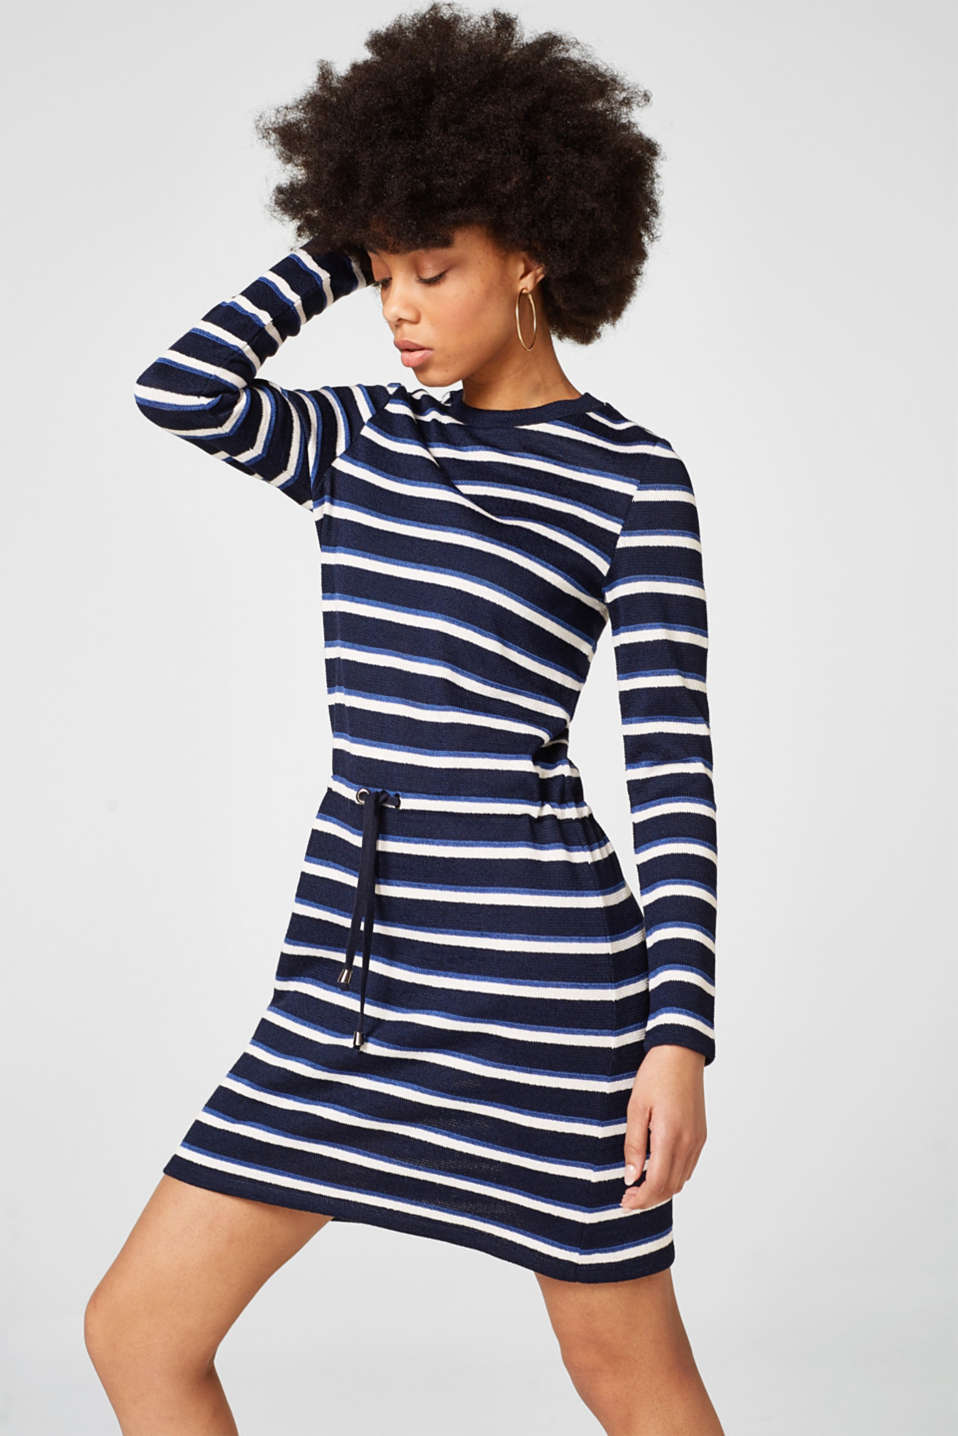 Esprit - Sporty knitted dress, drawstring at the waist